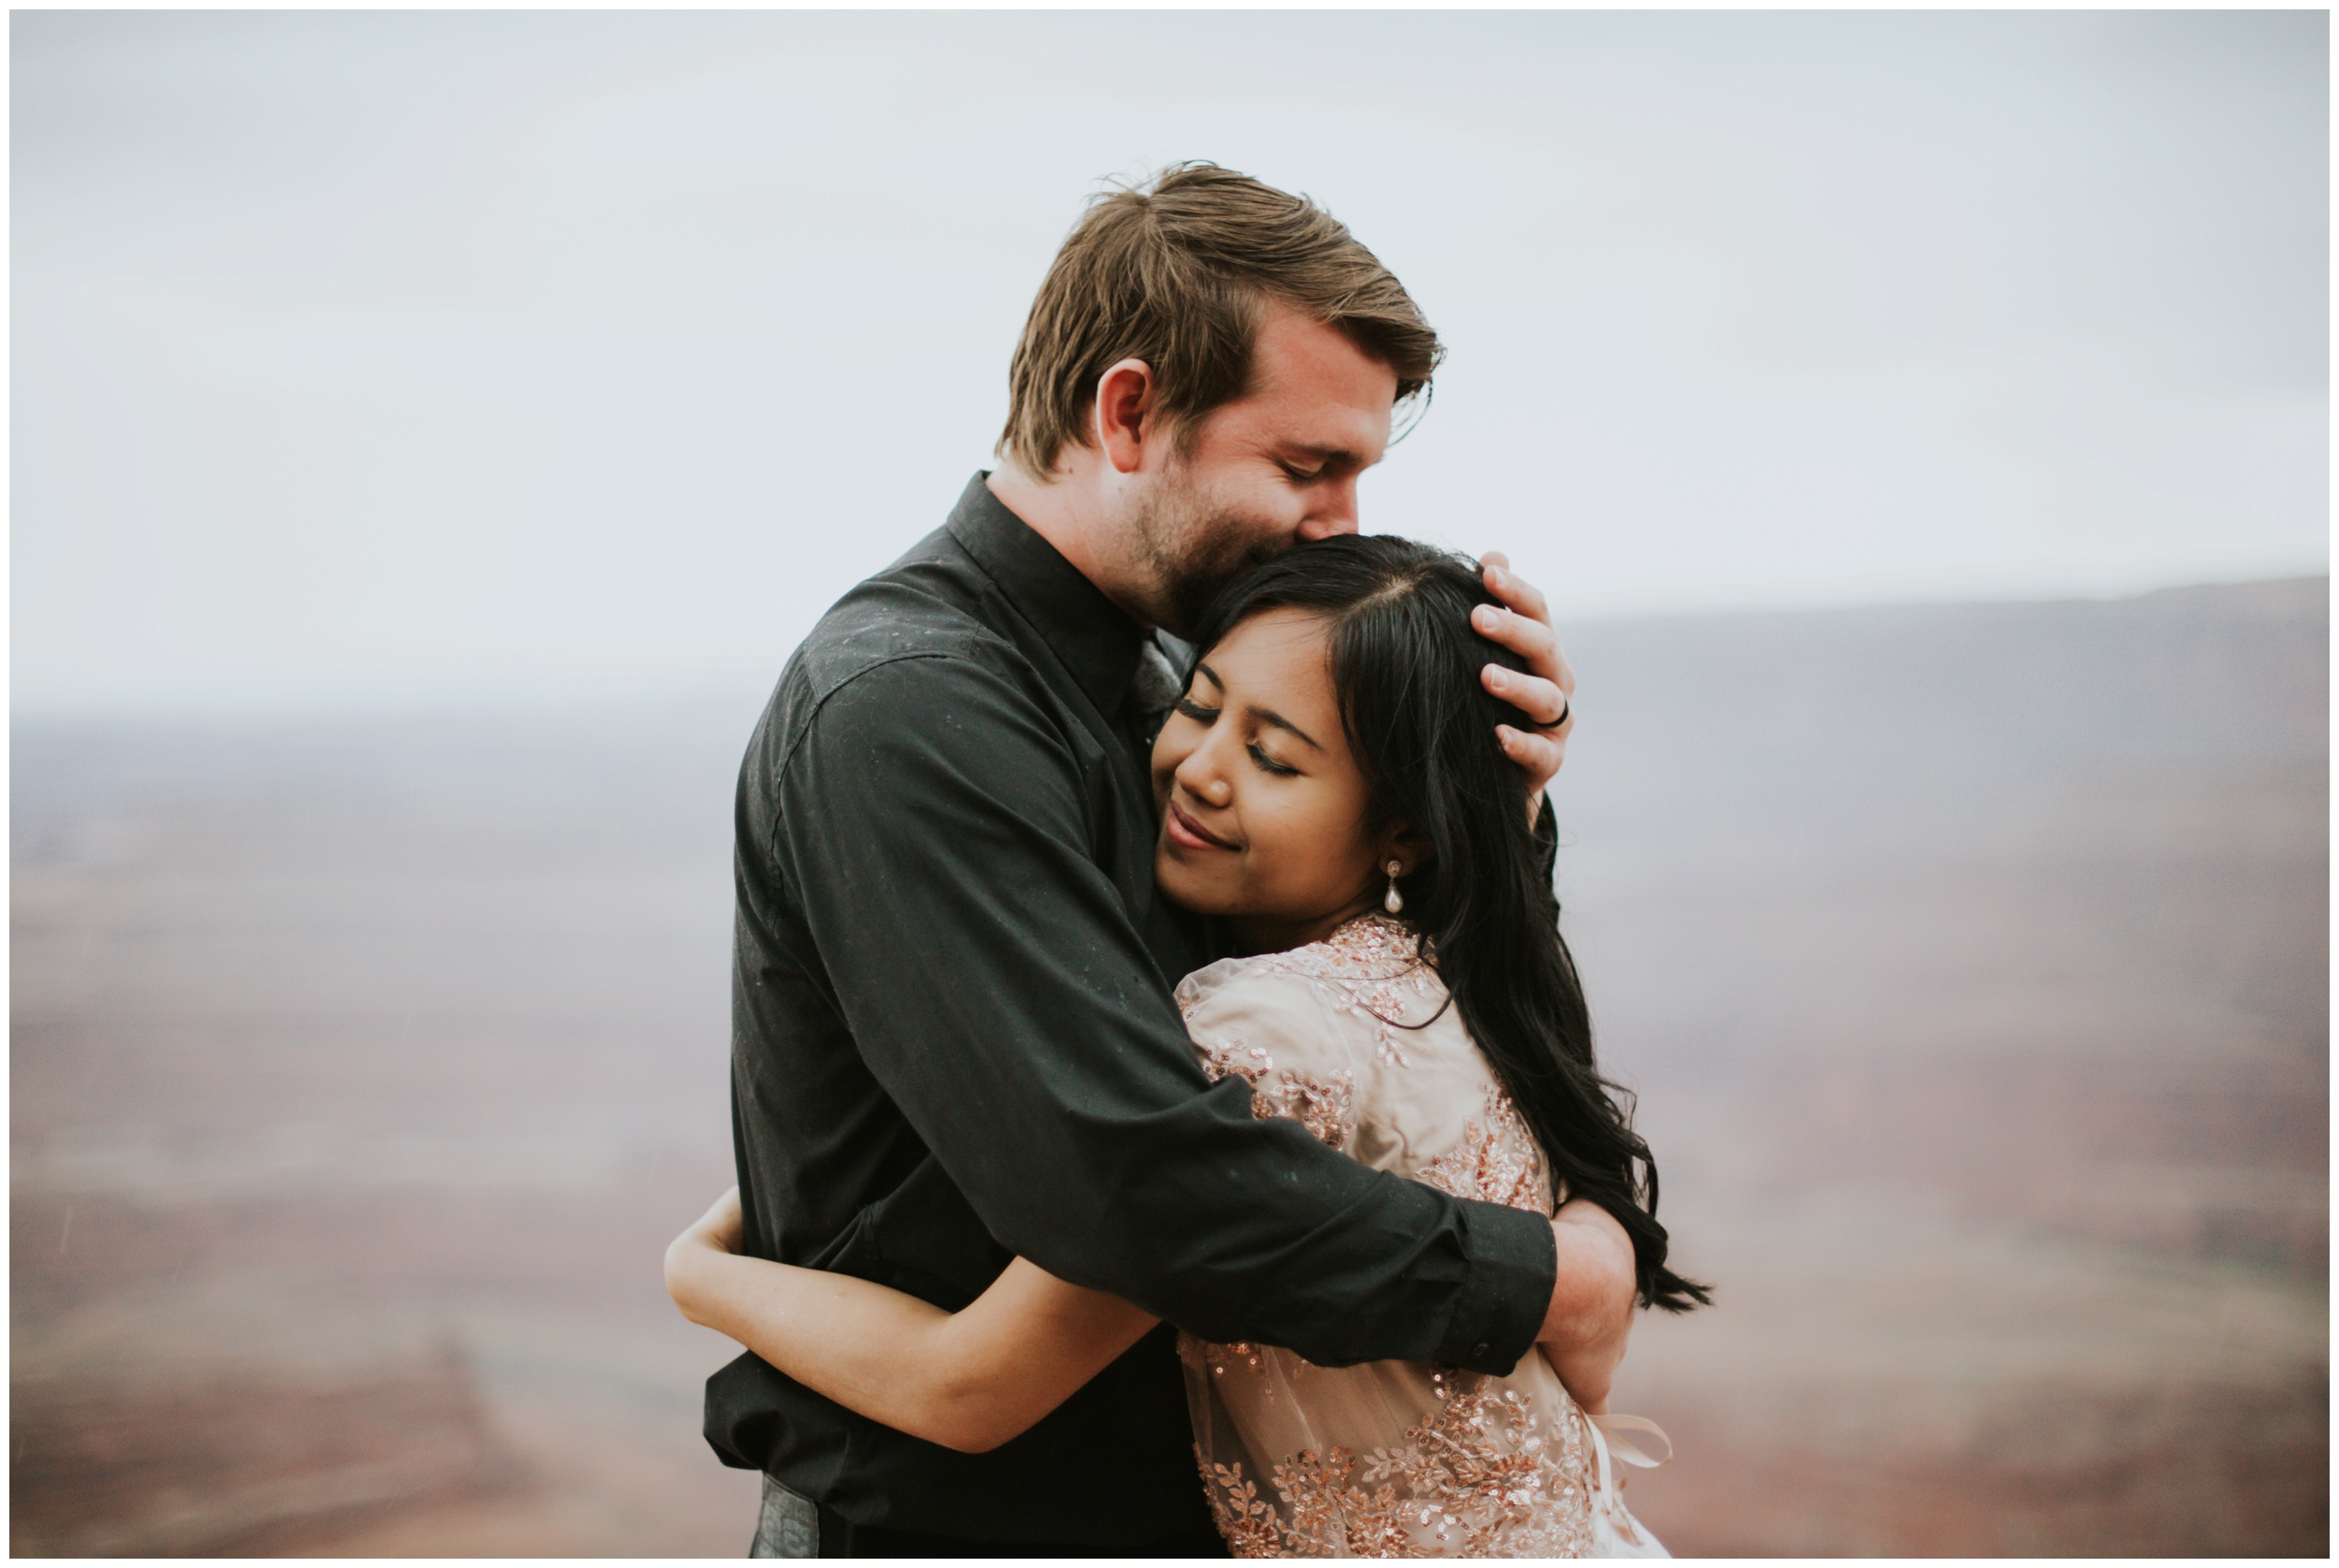 Couple hugging in the rain at Dead Horse Point State Park Overlook | Elopement Photographer www.riversandroadsphotography.com